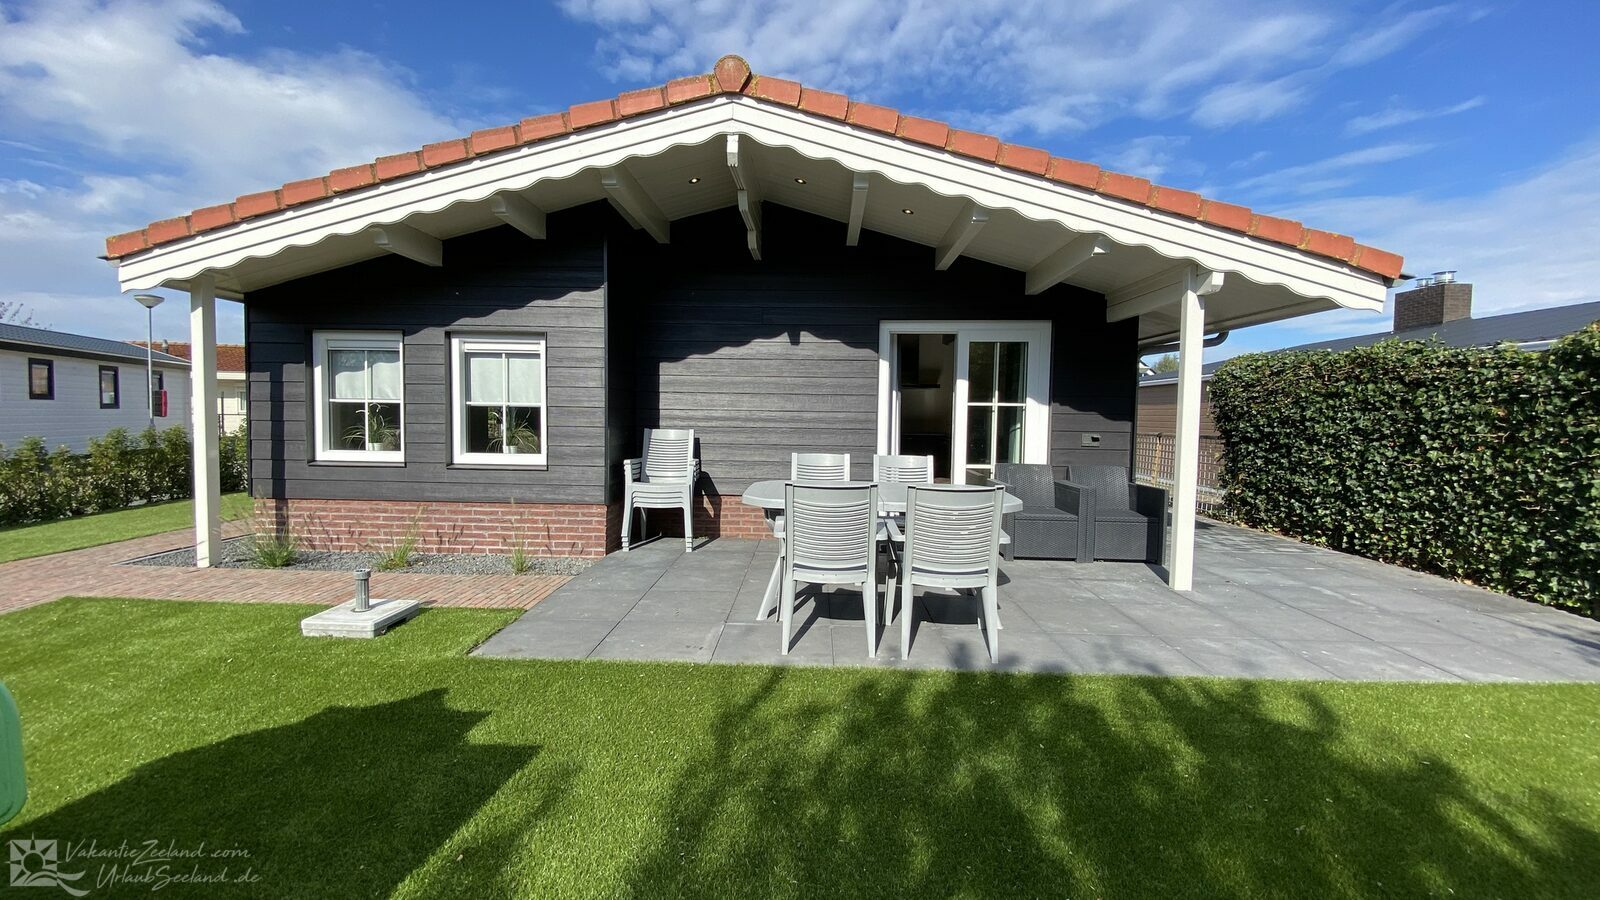 VZ866 Holiday chalet in Sint Annaland